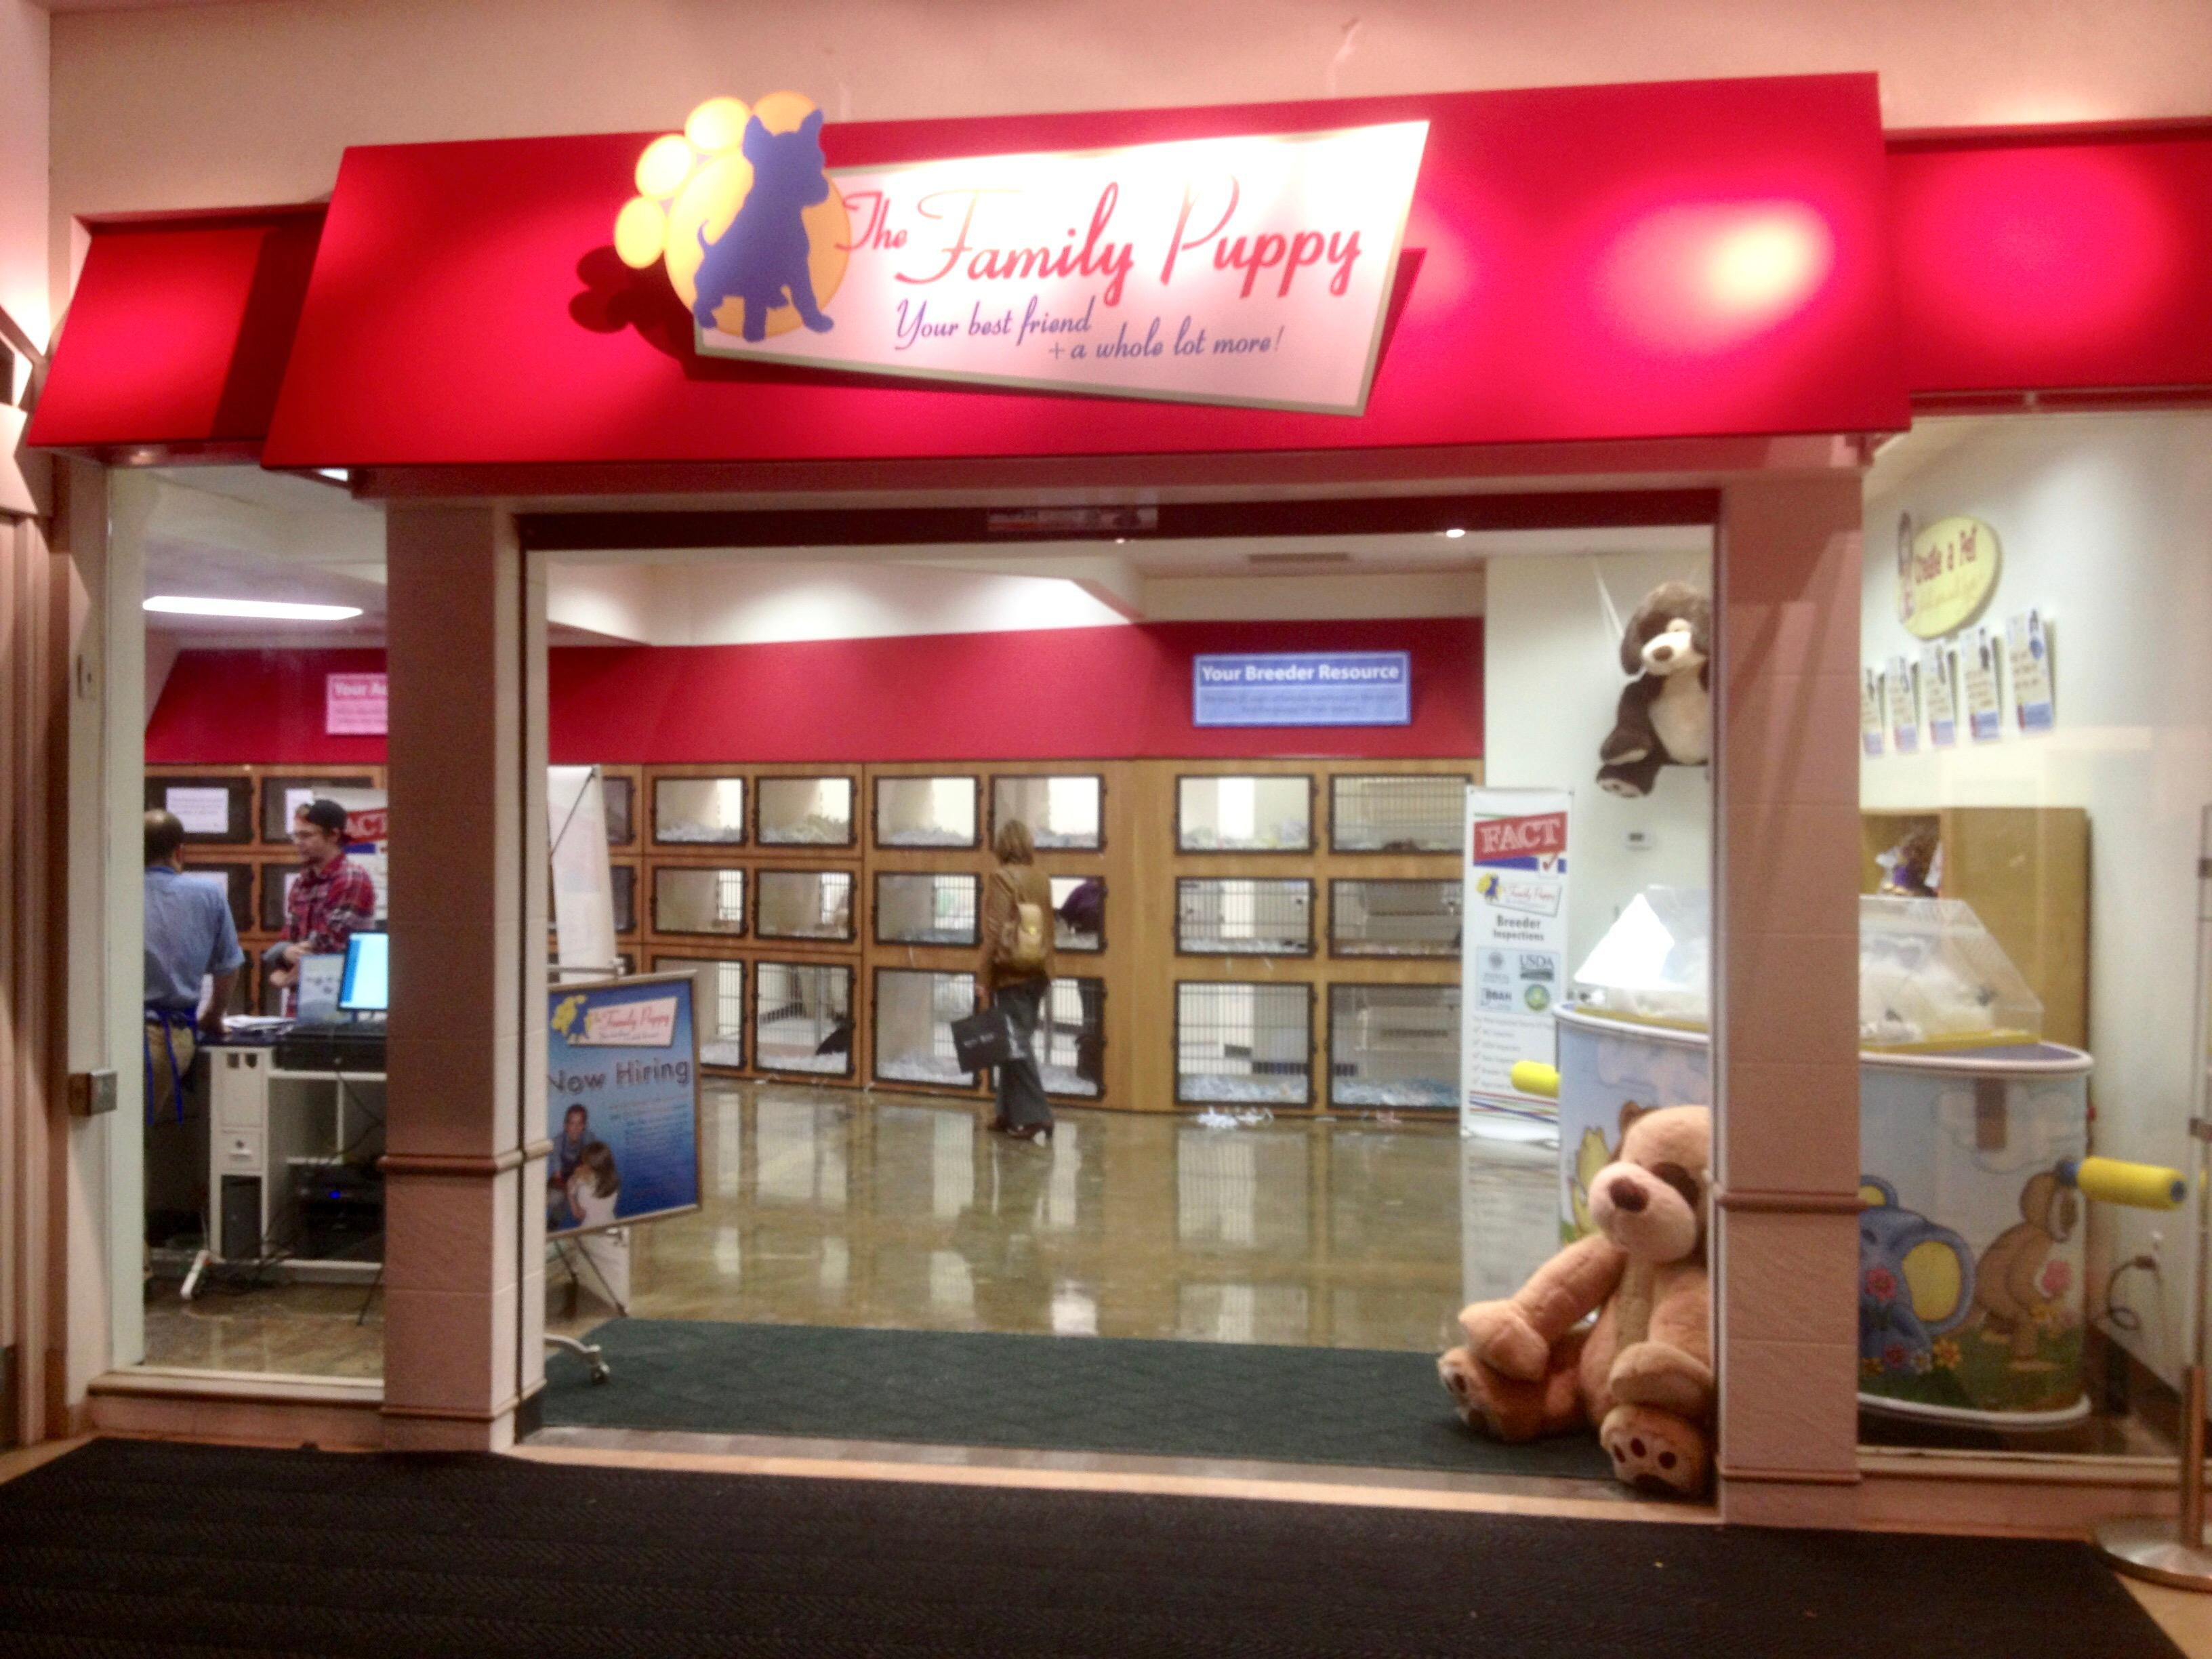 The Family Puppy of Franklin Park Mall image 3